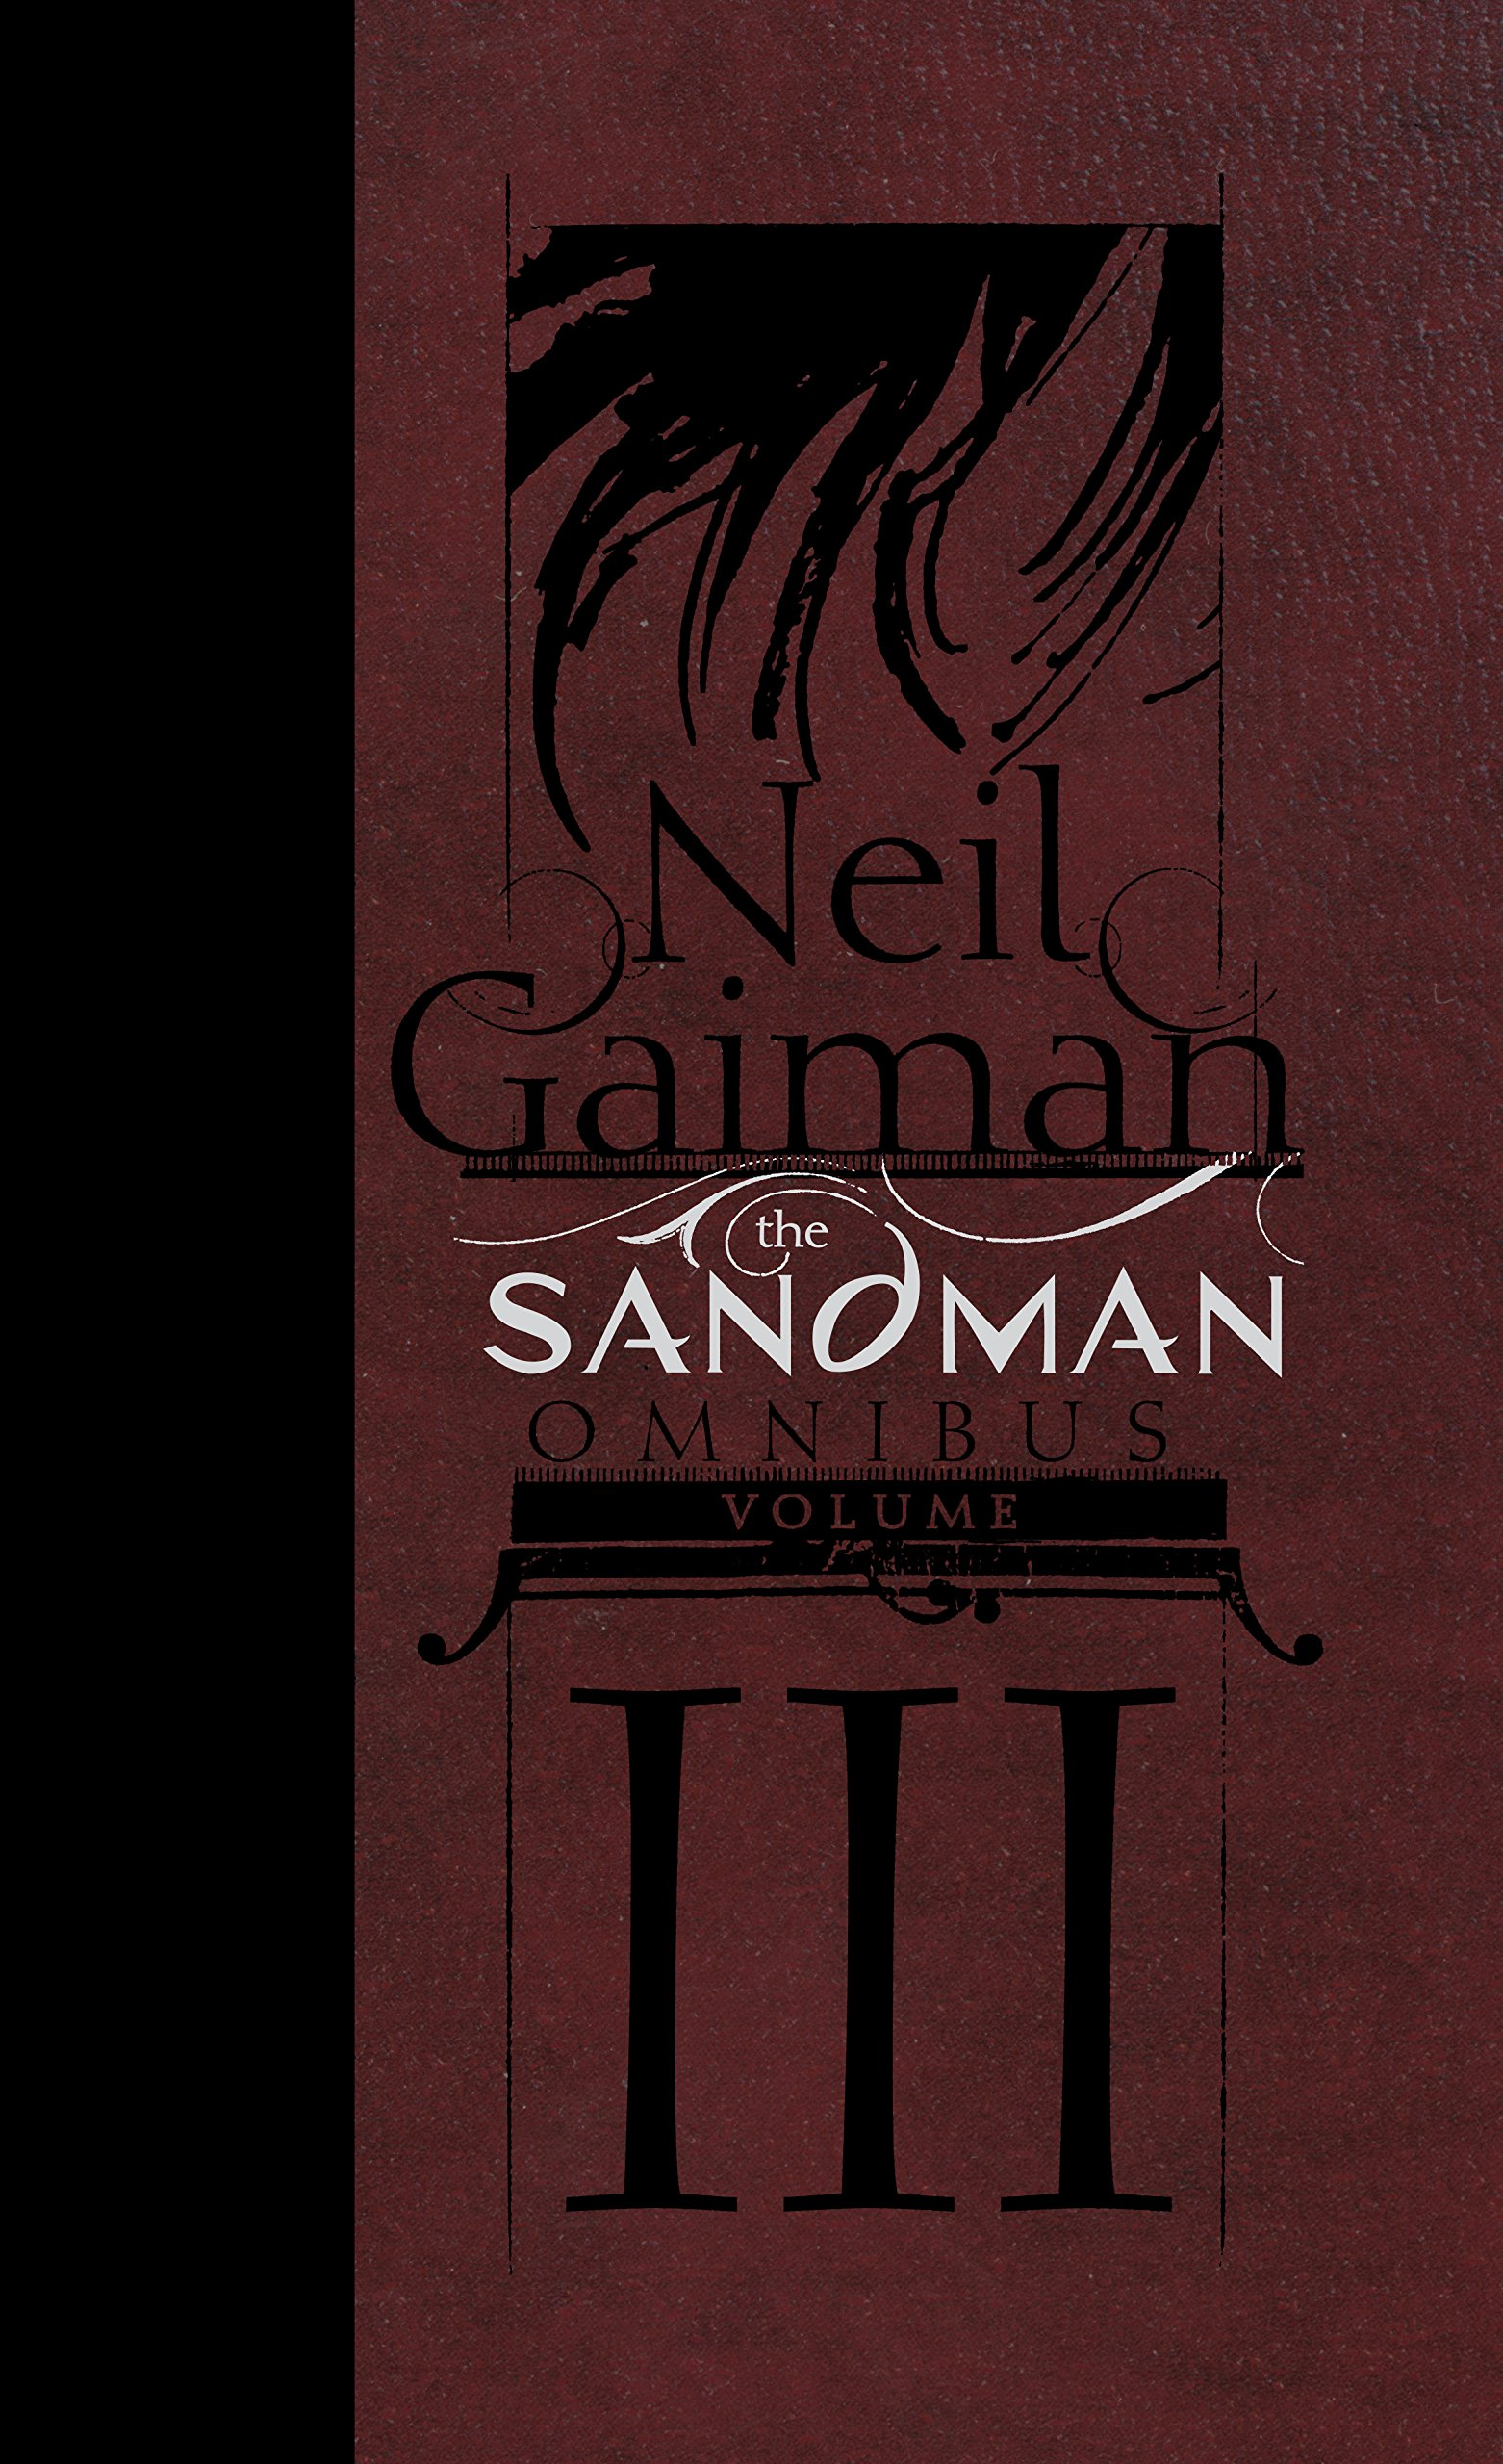 The sandman overture goodreads giveaways